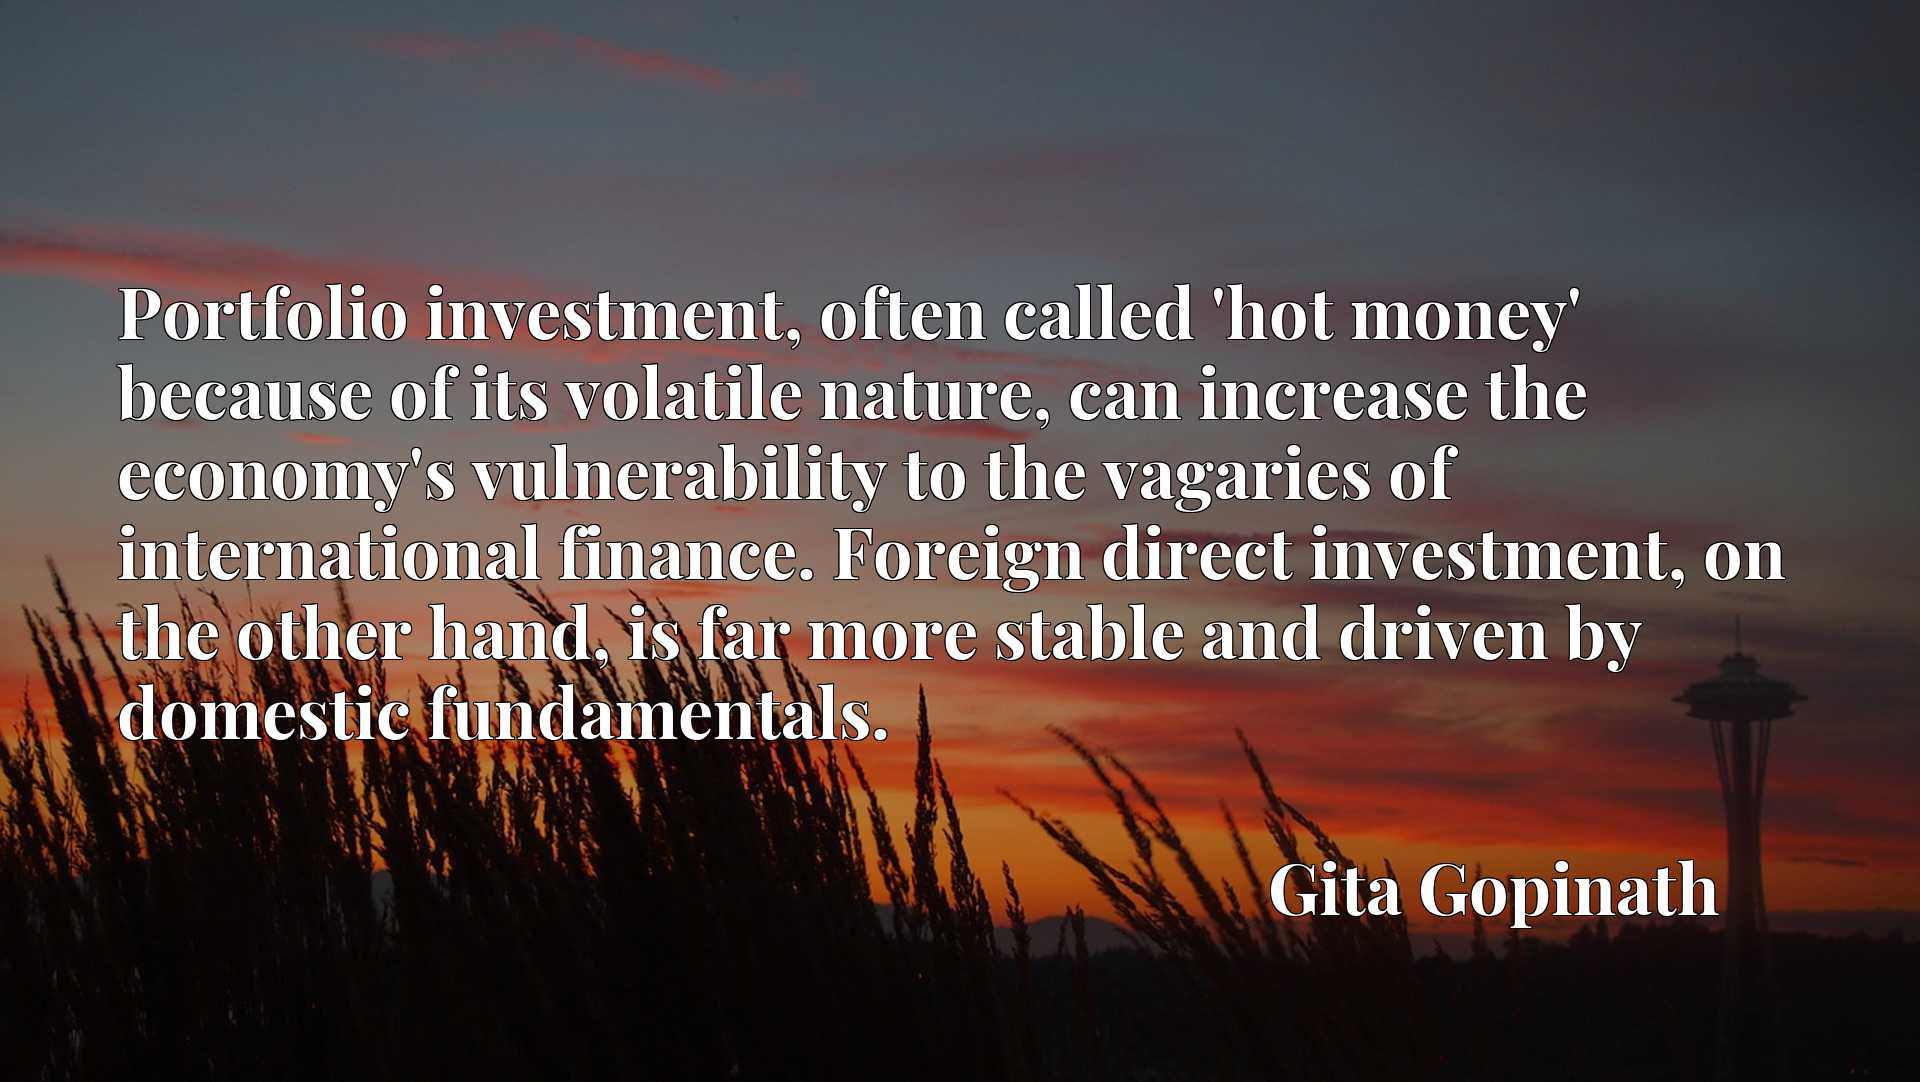 Portfolio investment, often called 'hot money' because of its volatile nature, can increase the economy's vulnerability to the vagaries of international finance. Foreign direct investment, on the other hand, is far more stable and driven by domestic fundamentals.